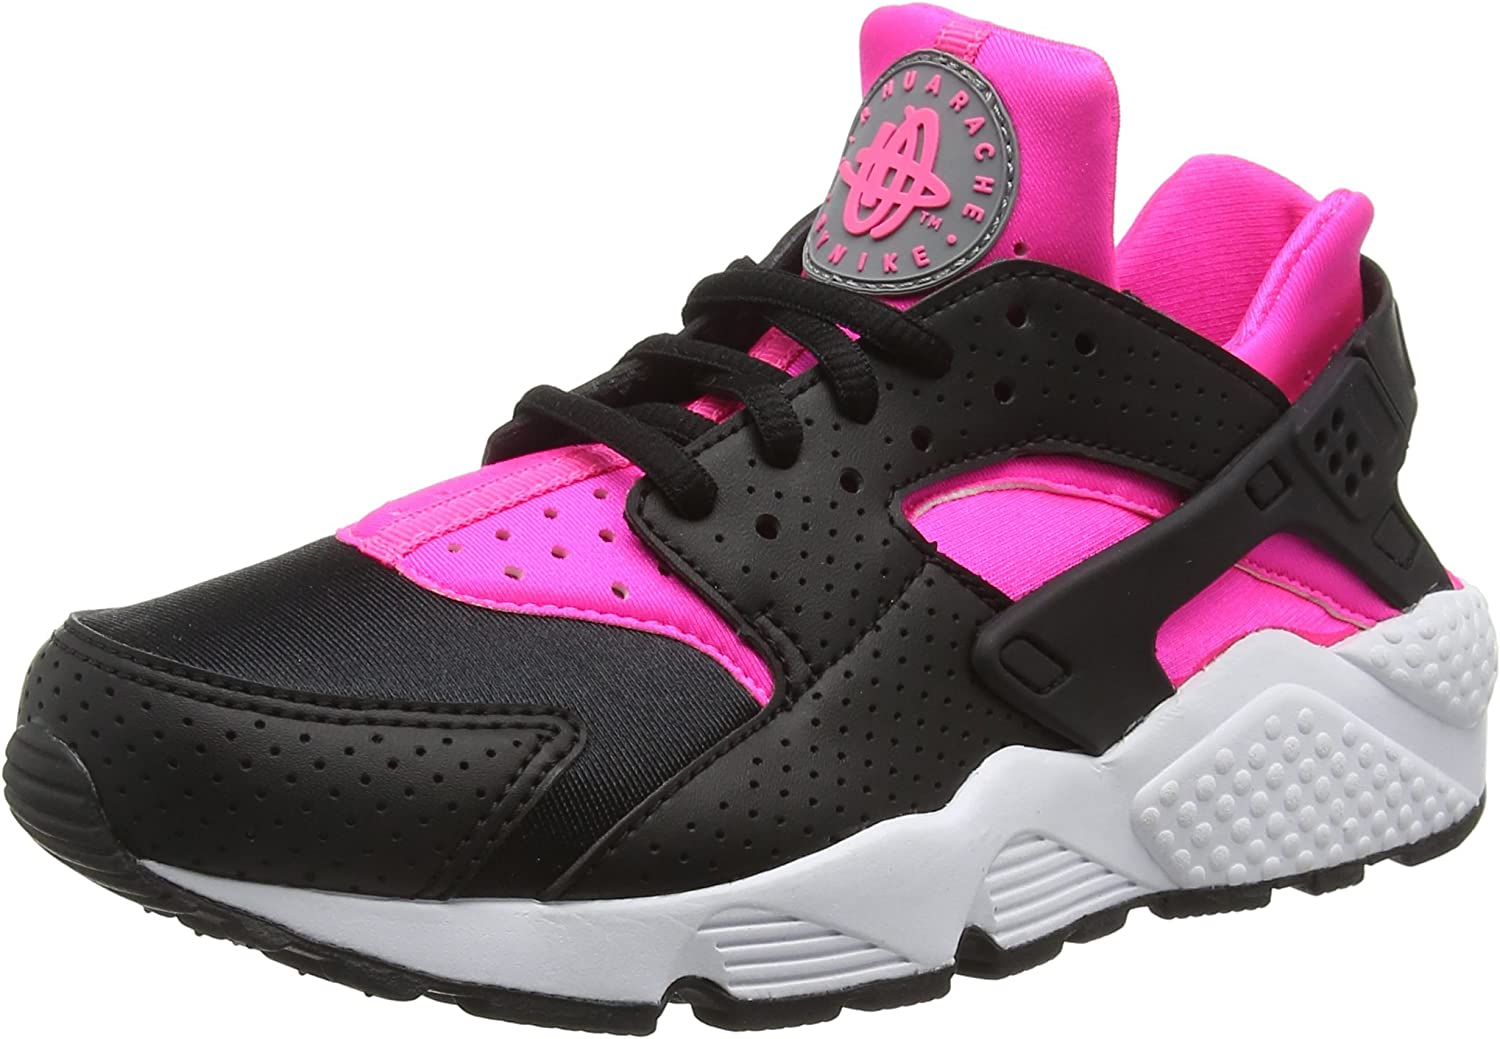 Nike W's AIR Huarache Run - 634835-604